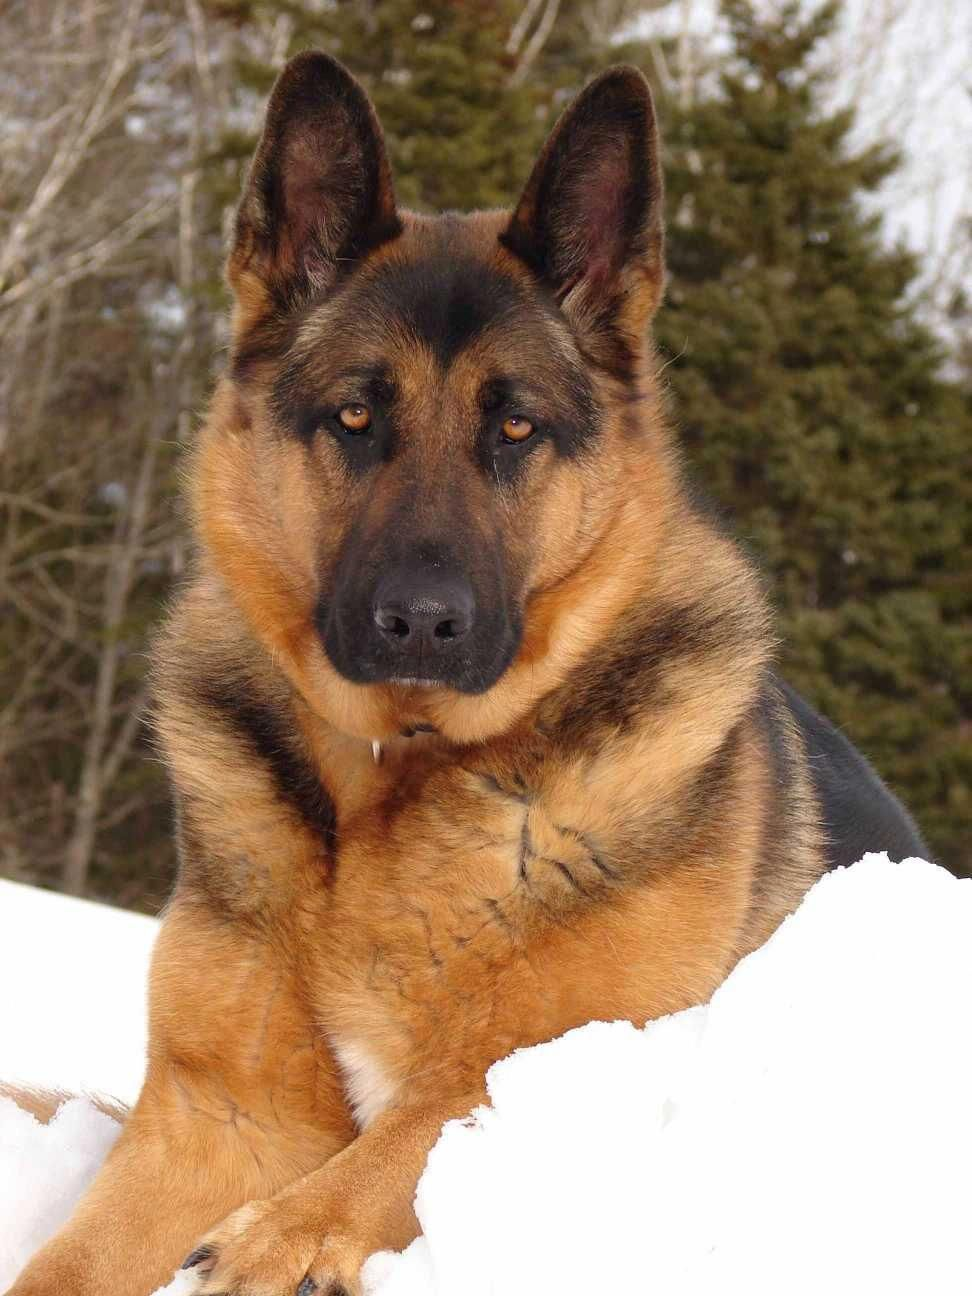 German Shepherd Strong And Loyal With Images German Shepherd Puppies German Shepherd Dogs Dog Breeds